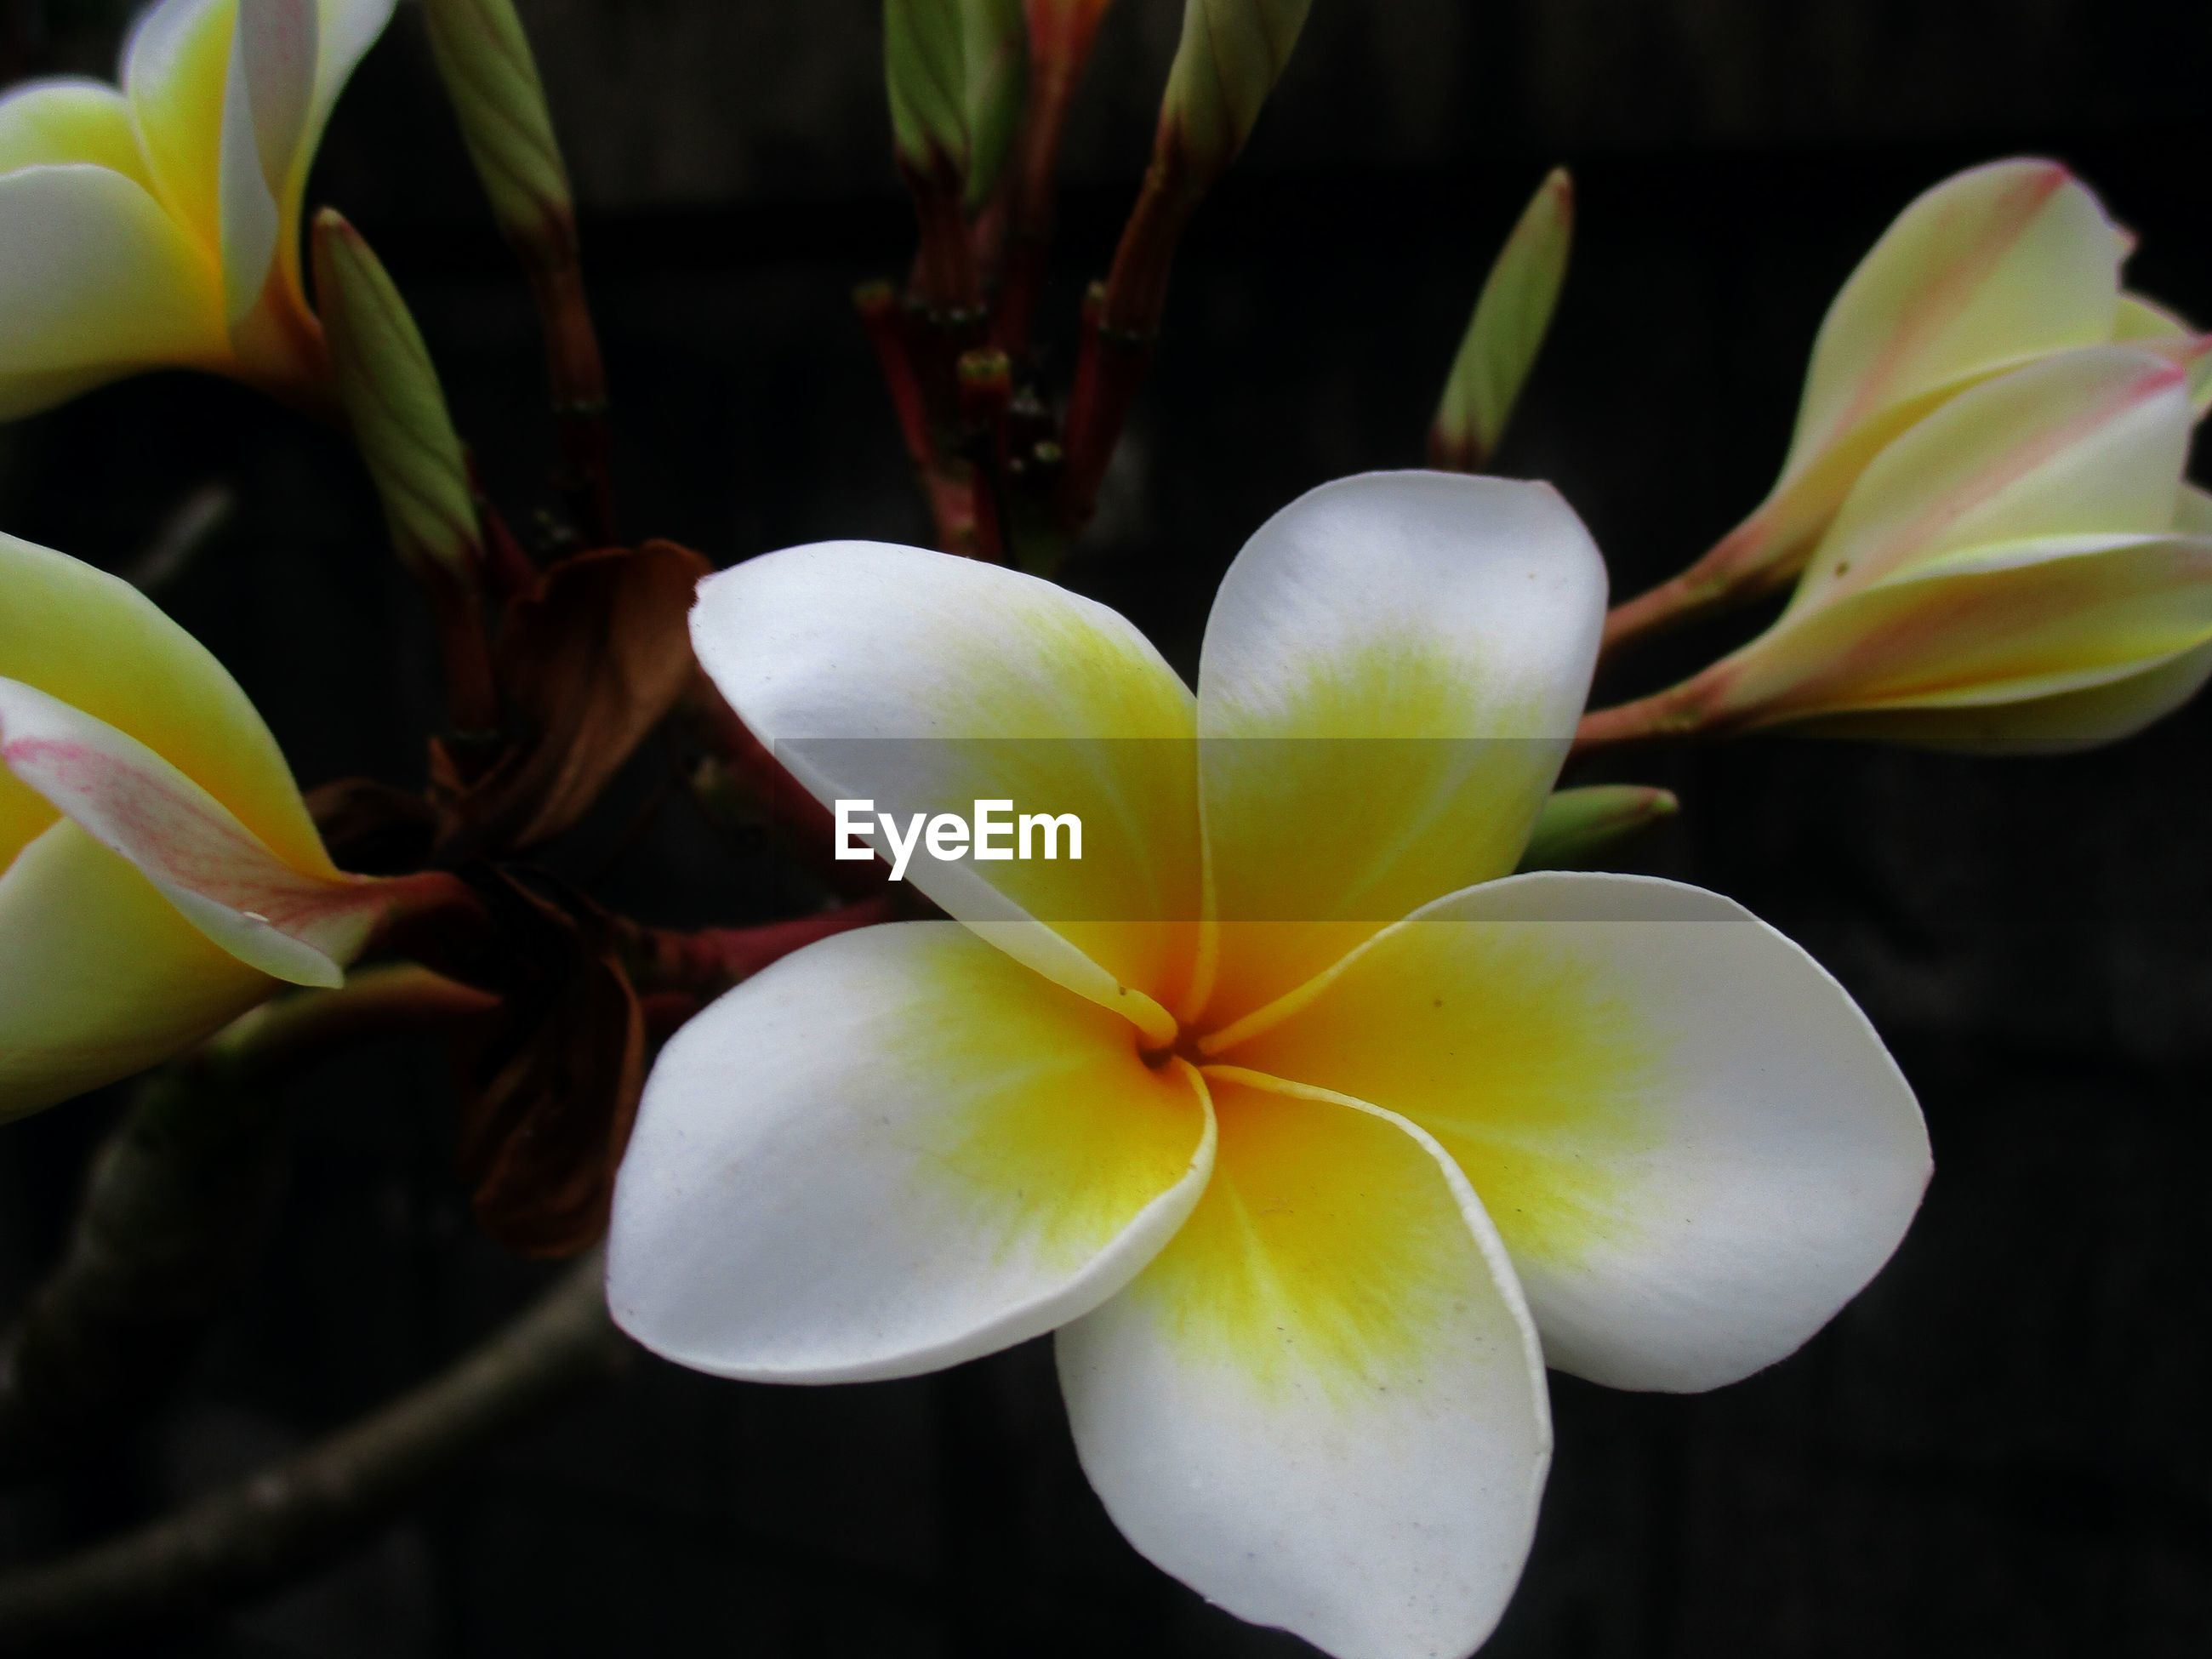 CLOSE-UP OF FRANGIPANI FLOWERS BLOOMING